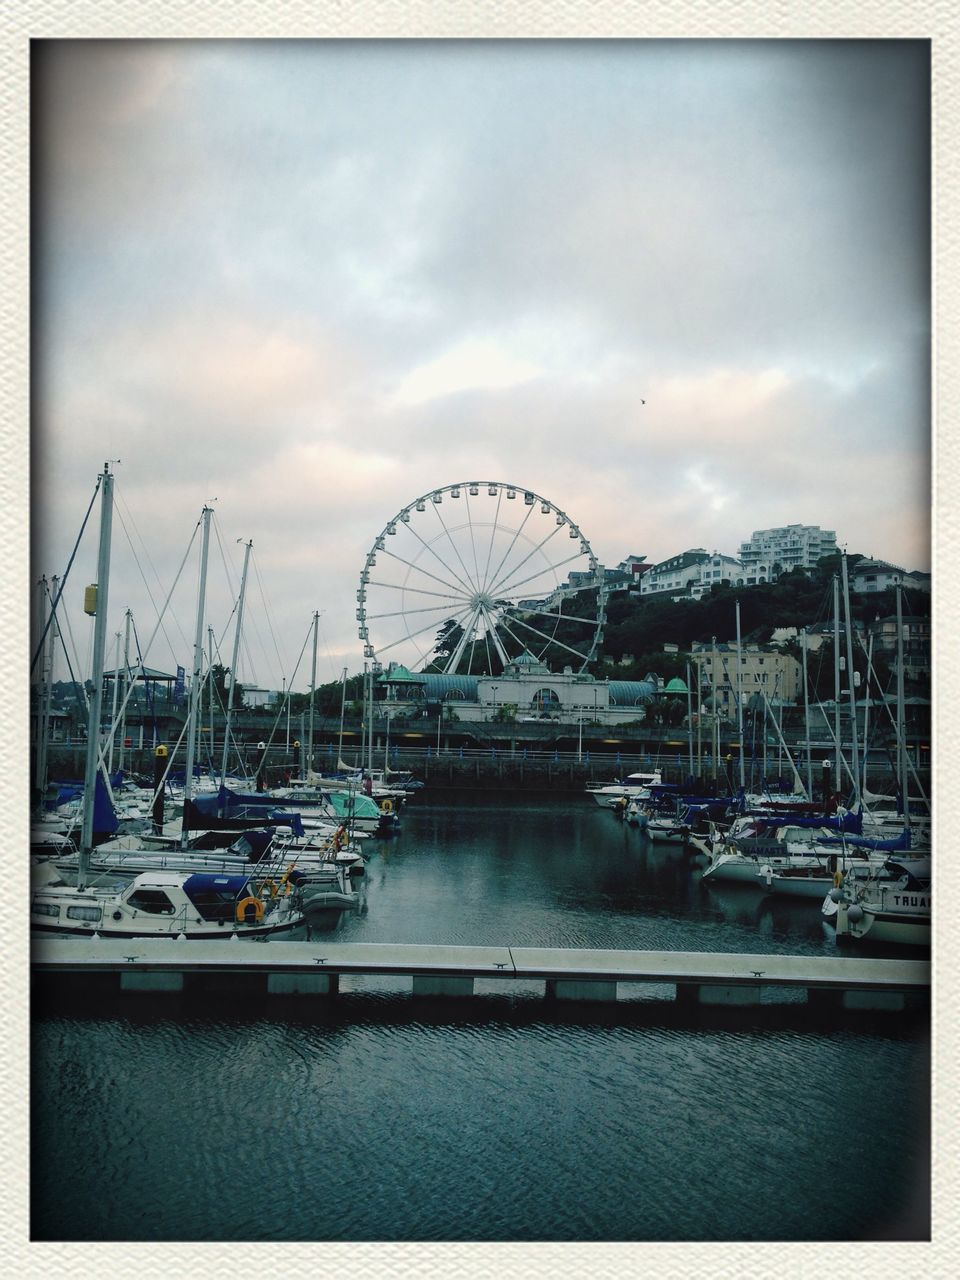 View Of Ferris Wheel In City Next To Sea Against Cloudy Sky